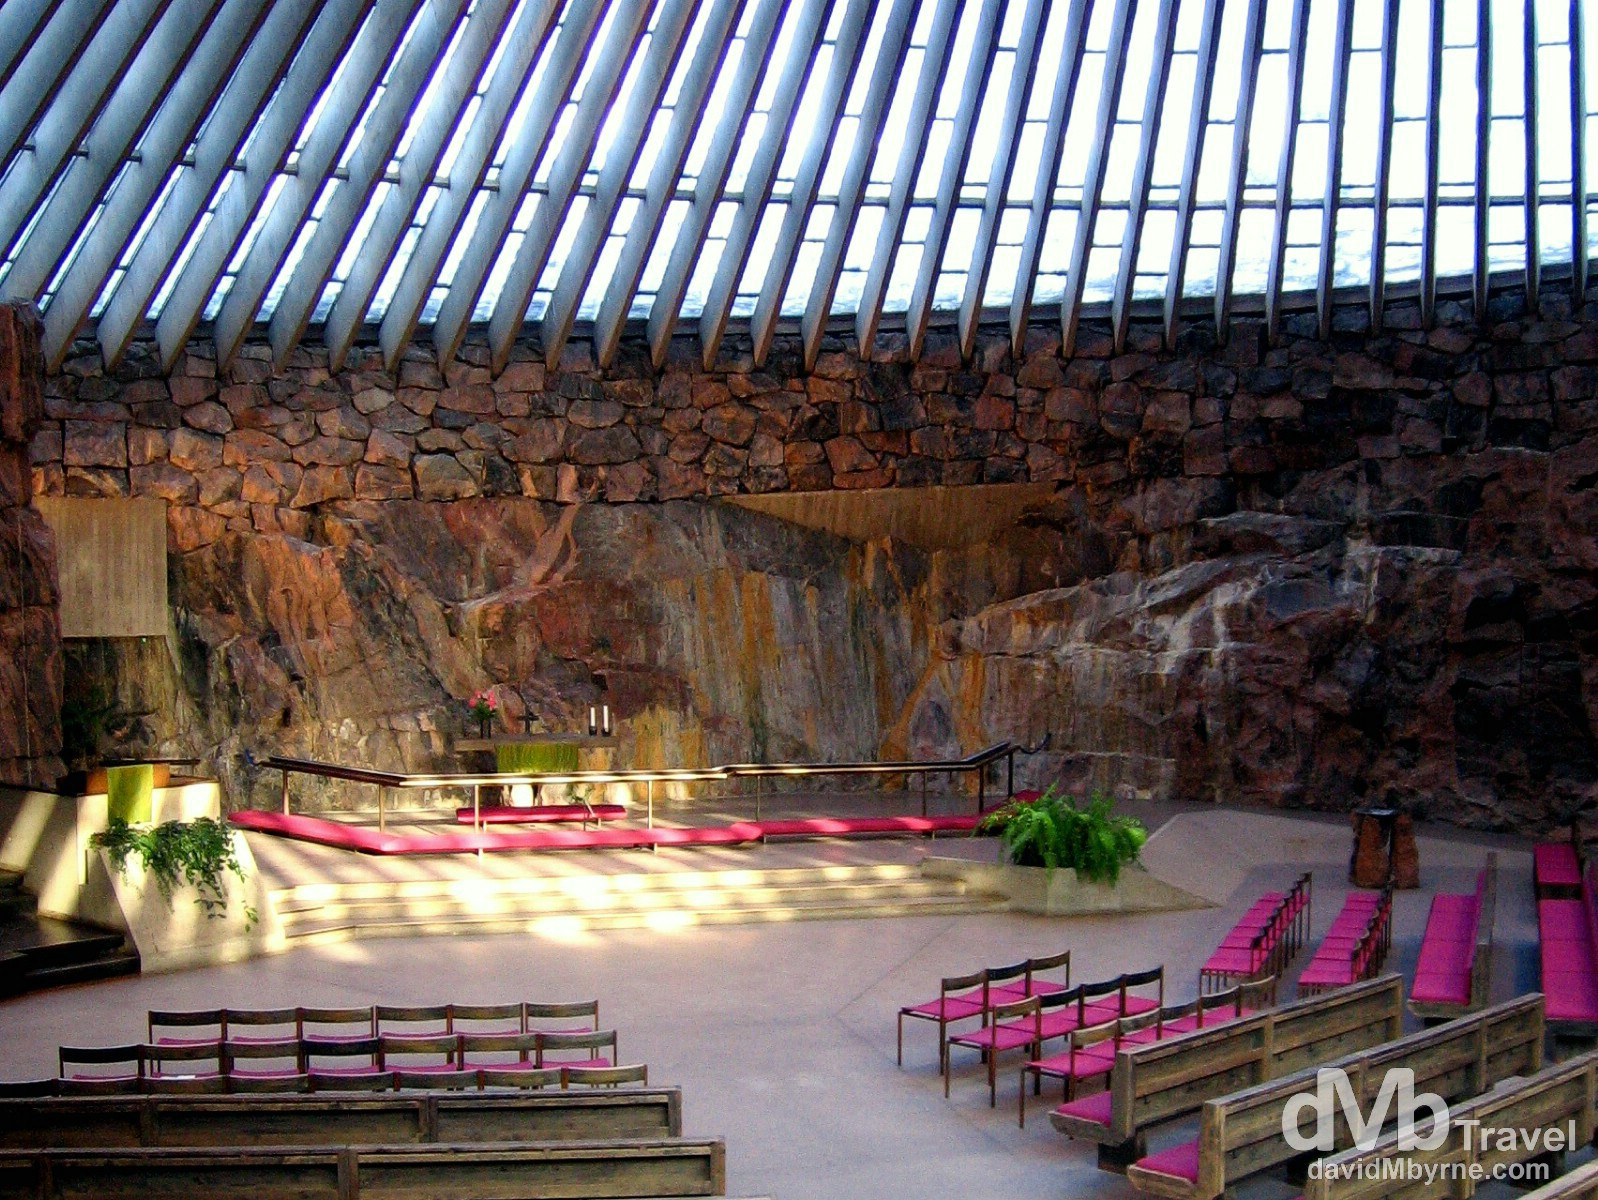 Temppeliaukio Church, aka the Rock Church, in Helsinki, Finland. March 1, 2006.